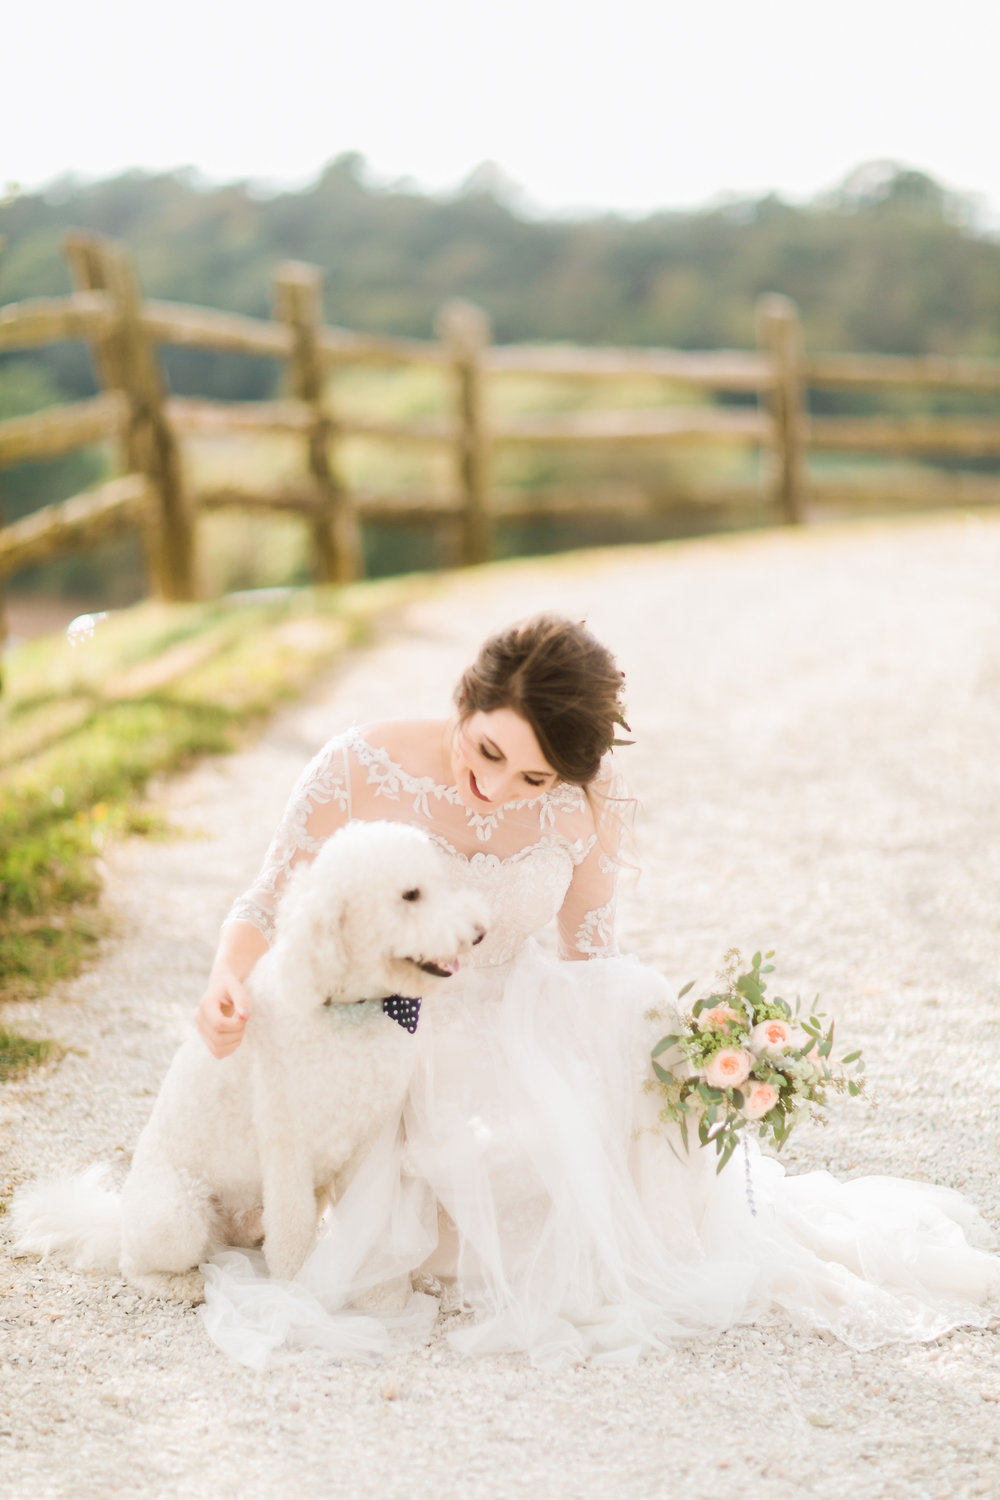 MissouriRusticWedding_StLouisWeddingPhotographer_AliciaDan_CatherineRhodesPhotography-2529-Edit.jpg